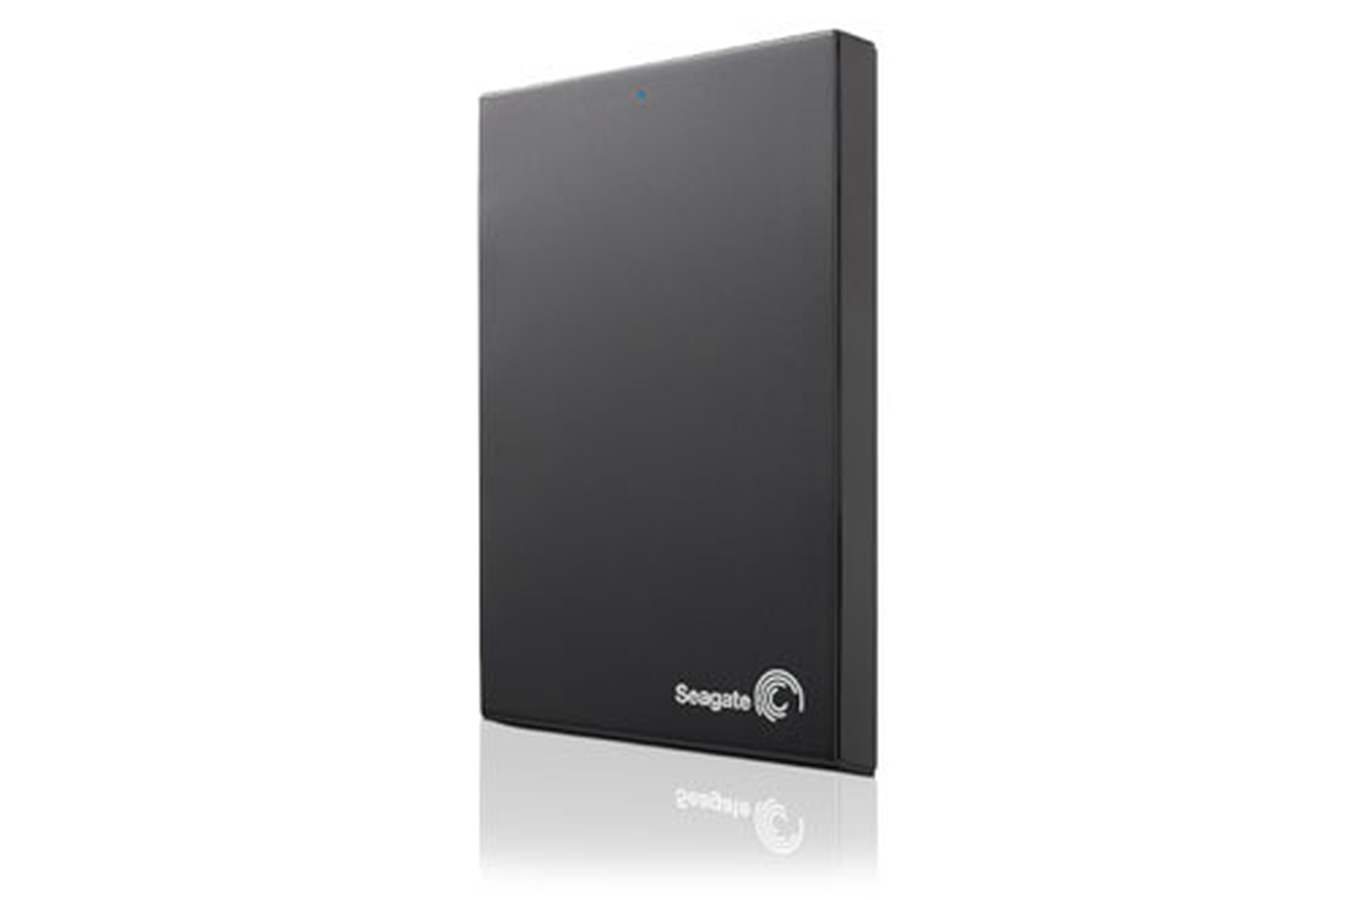 disque dur externe seagate expansion 2 5 39 39 1 to usb 3 0. Black Bedroom Furniture Sets. Home Design Ideas